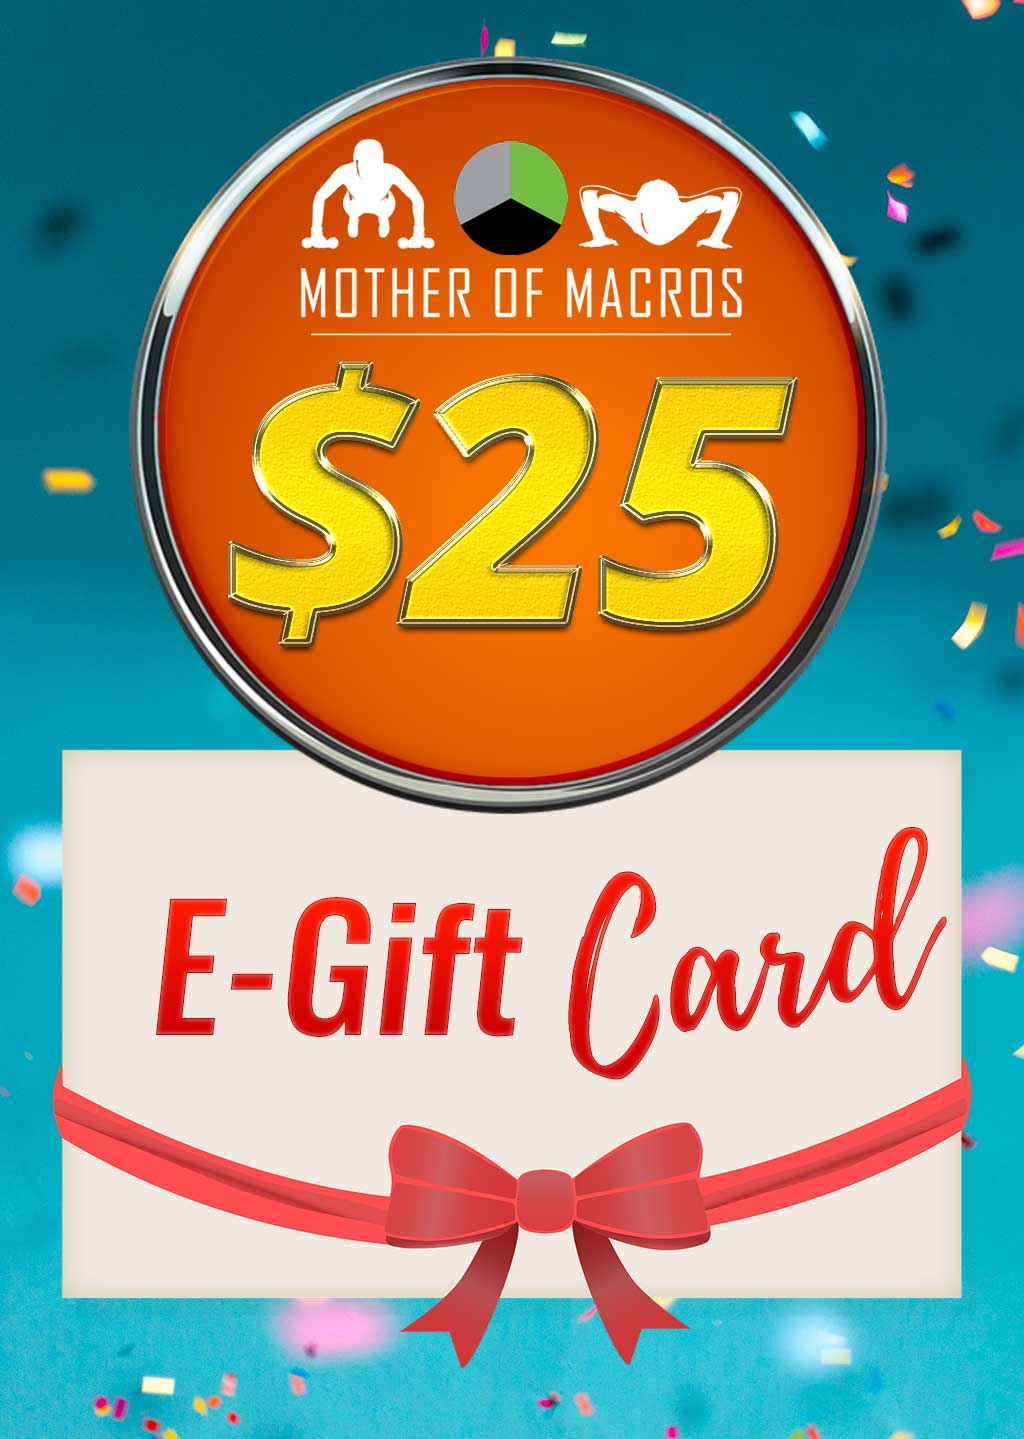 Mother of Macros E-Gift Card - Mother of Macros